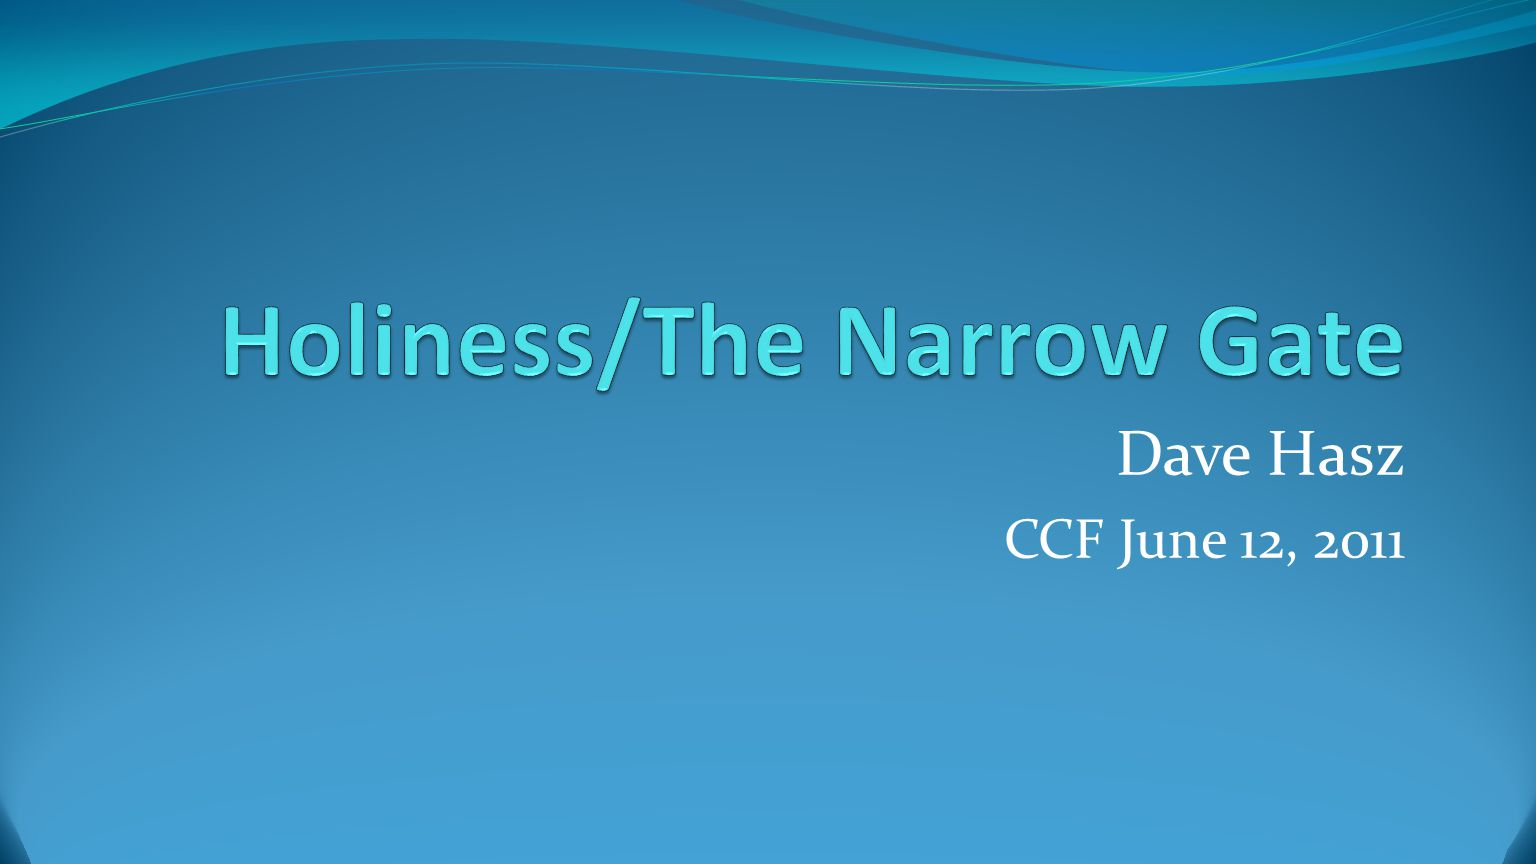 Dave Hasz CCF June 12, 2011